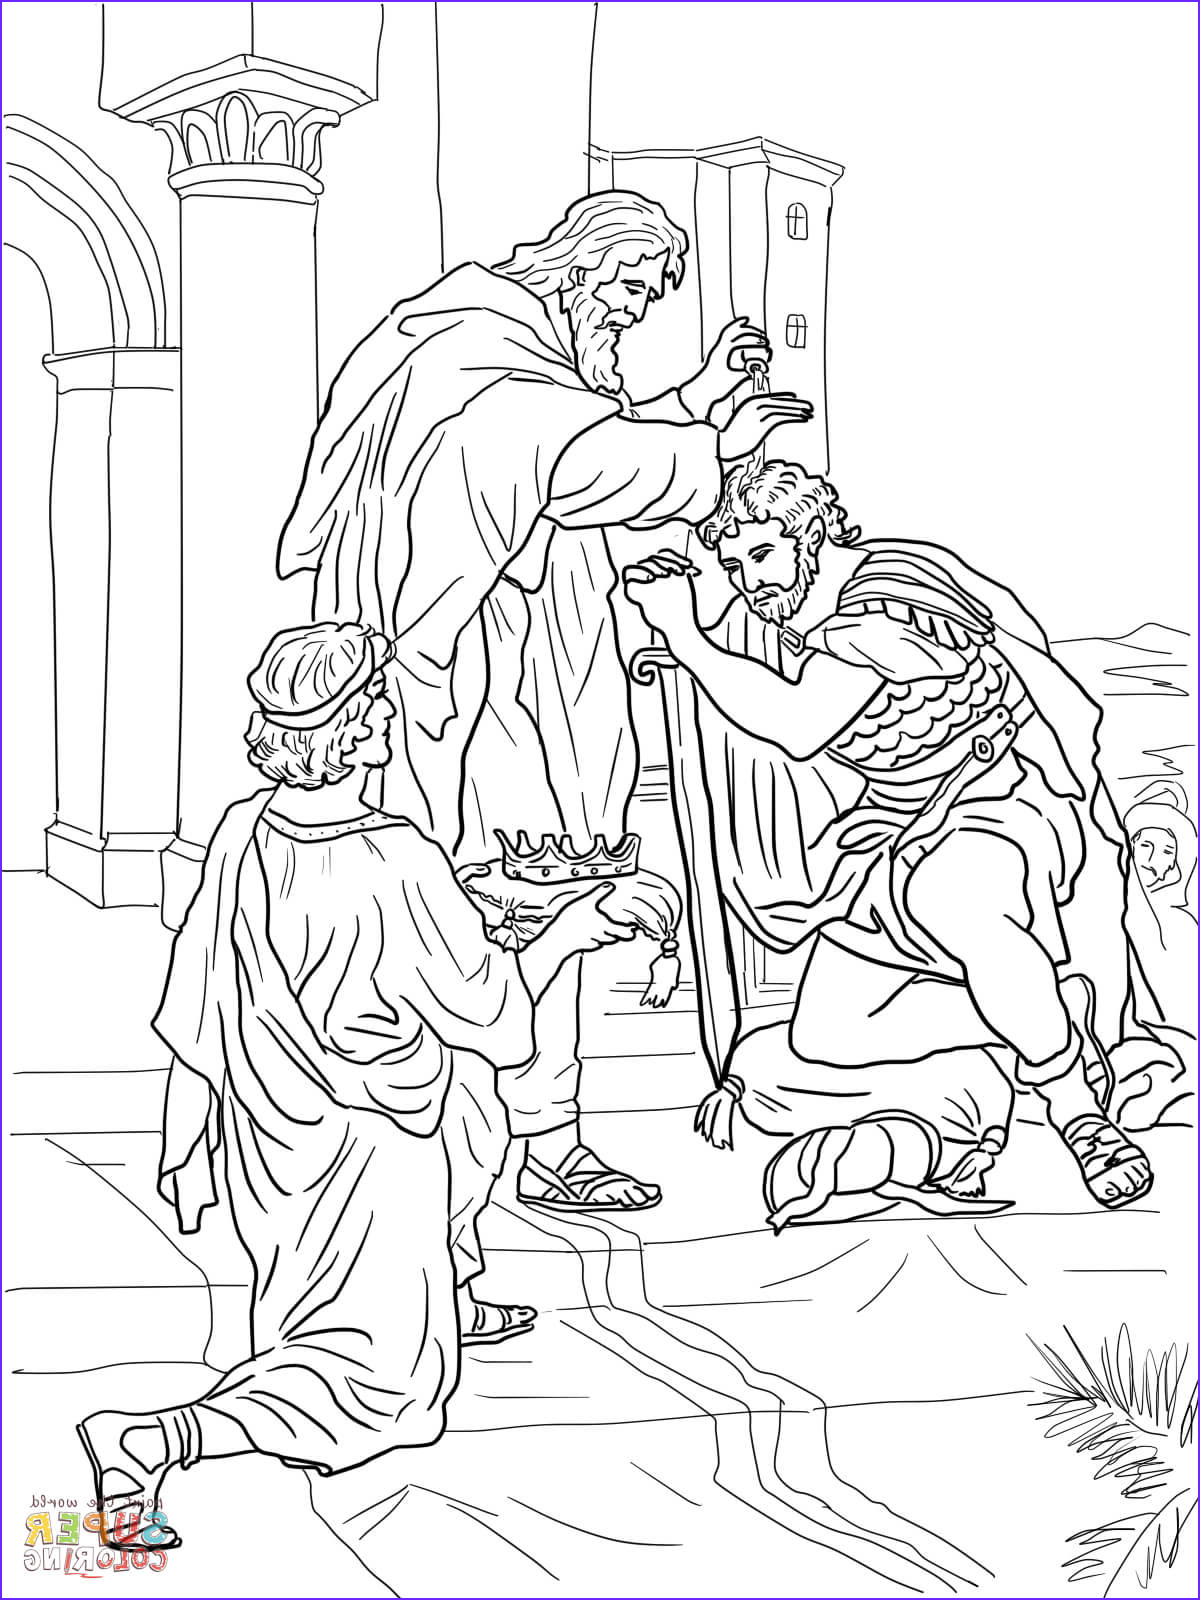 King David Coloring Page Cool Photos David is Crowned King Coloring Page